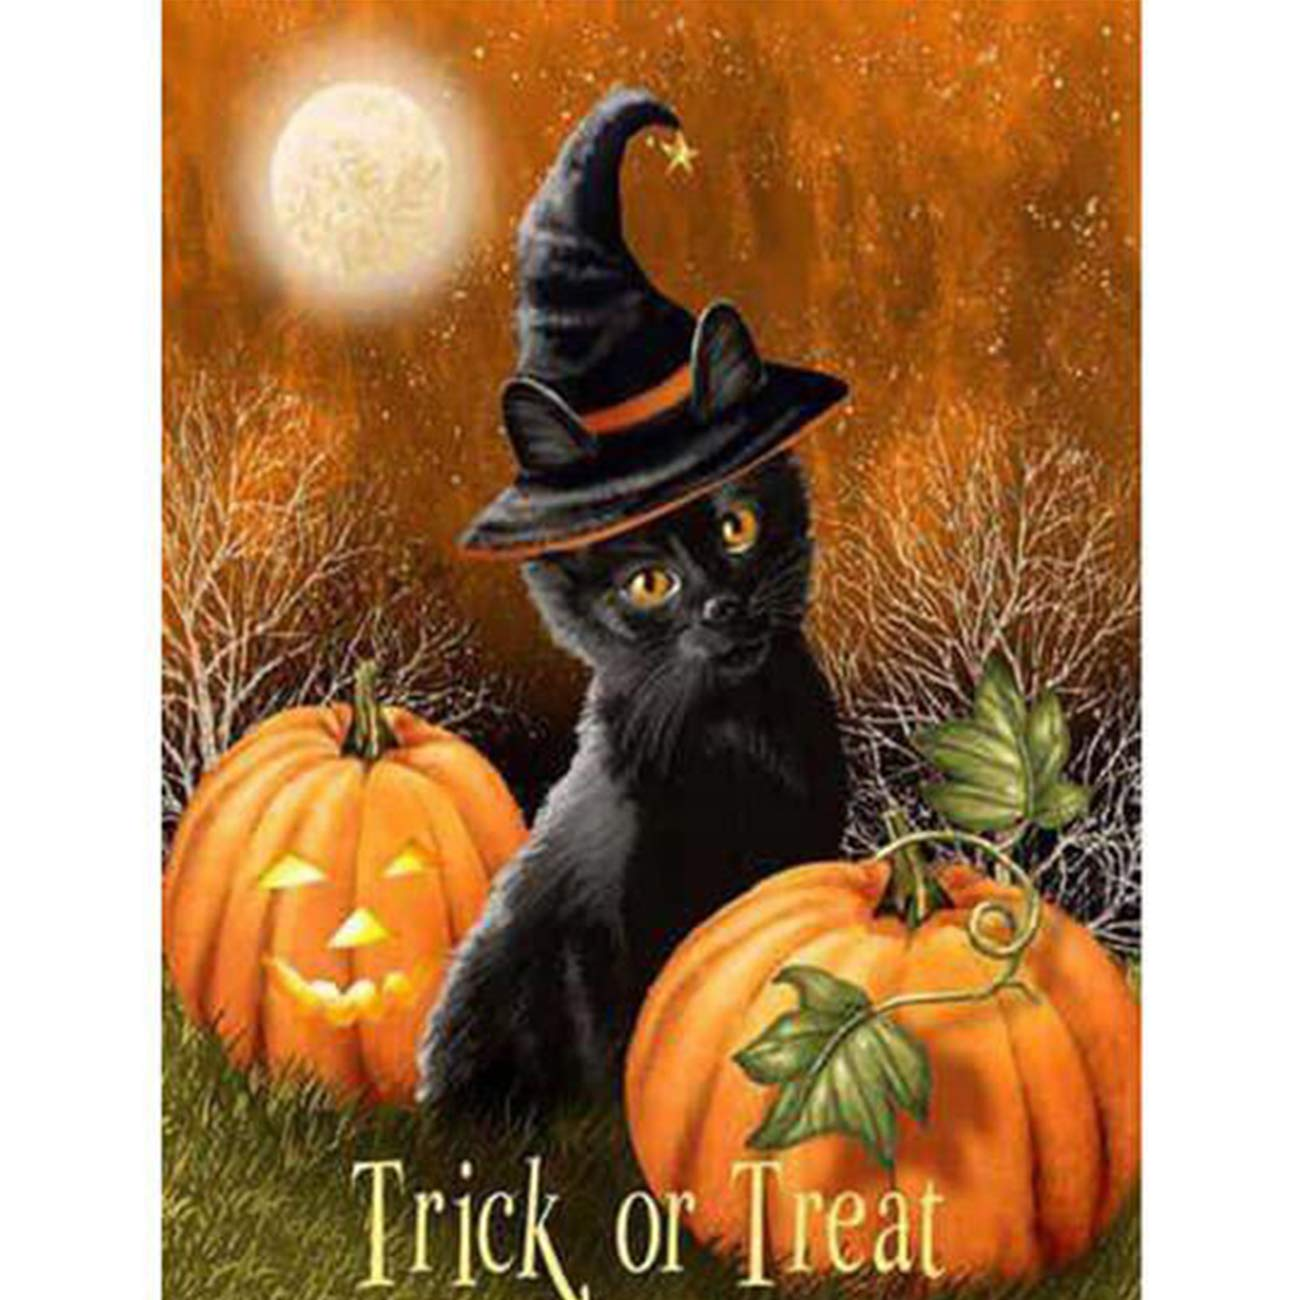 SKRYUIE 5D Diamond Painting Halloween Candy Hat Cat Full Drill by Number Kits for Adults Kids, DIY Craft Paint with Diamonds Arts Embroidery Cross Stitch Decorations (12x16inch)